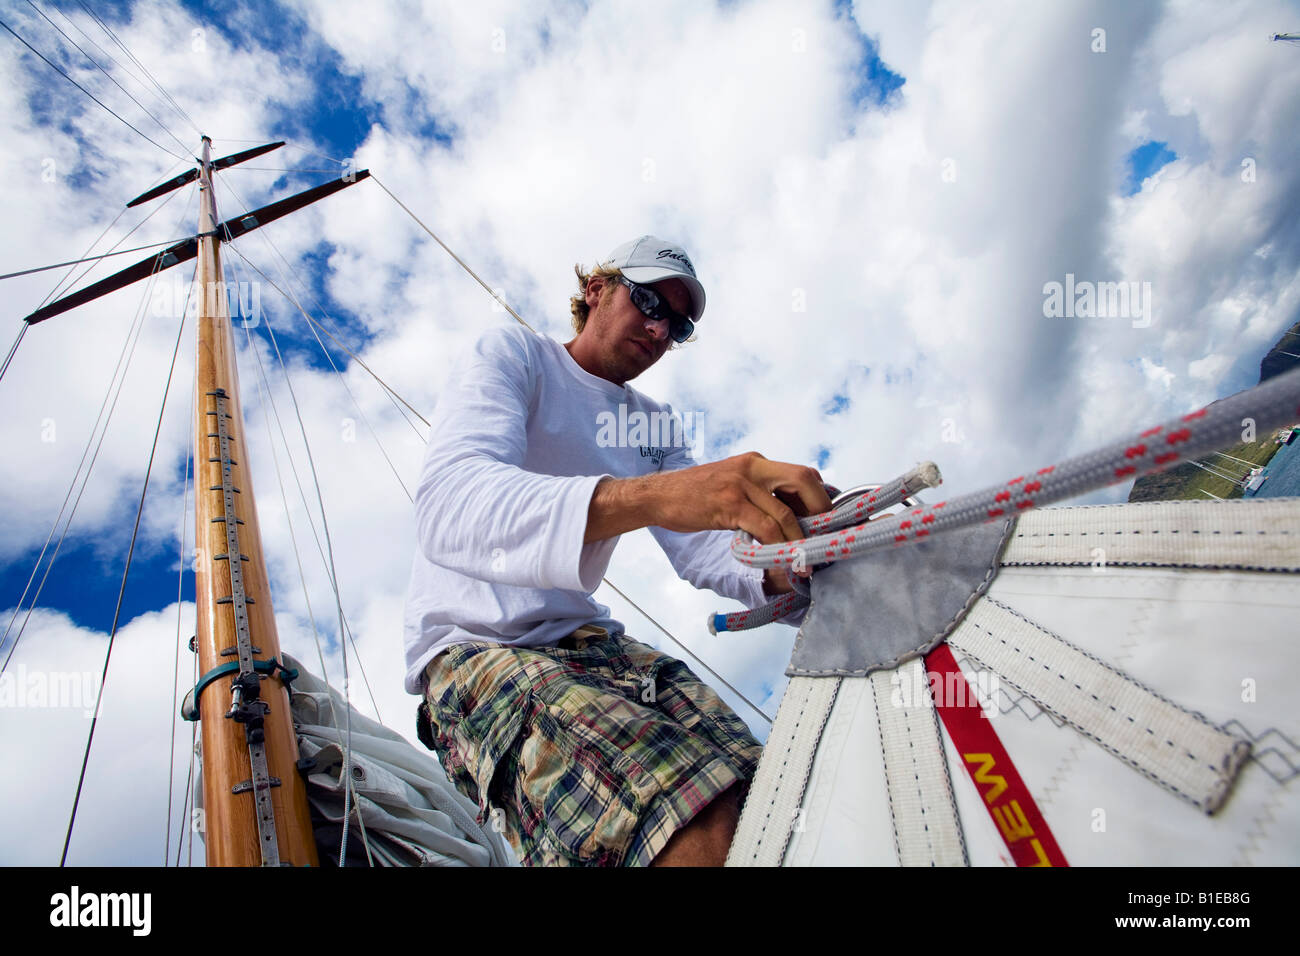 A crew member ties a bowline to secure the head sail during the 2008 Antigua Classic Yacht Regatta - Stock Image